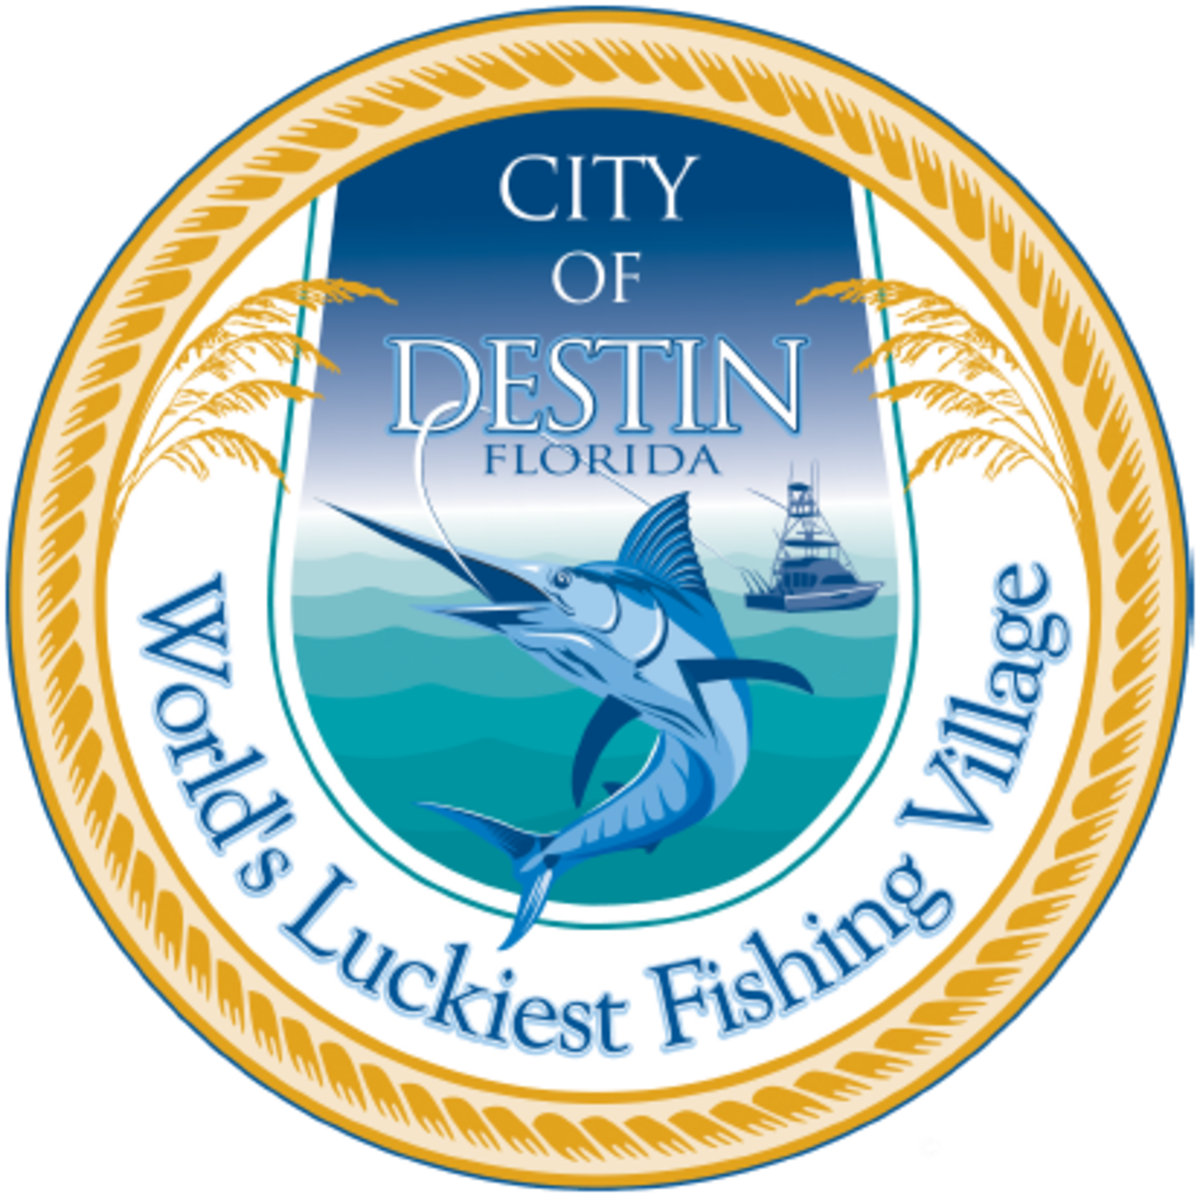 """The official seal of Destin, Florida, including its nickname: """"World's Luckiest Fishing Village"""".  The city gets its name from Leonard Destin, a New London, Connecticut fishing captain who resided in the area between 1845 and 1850."""